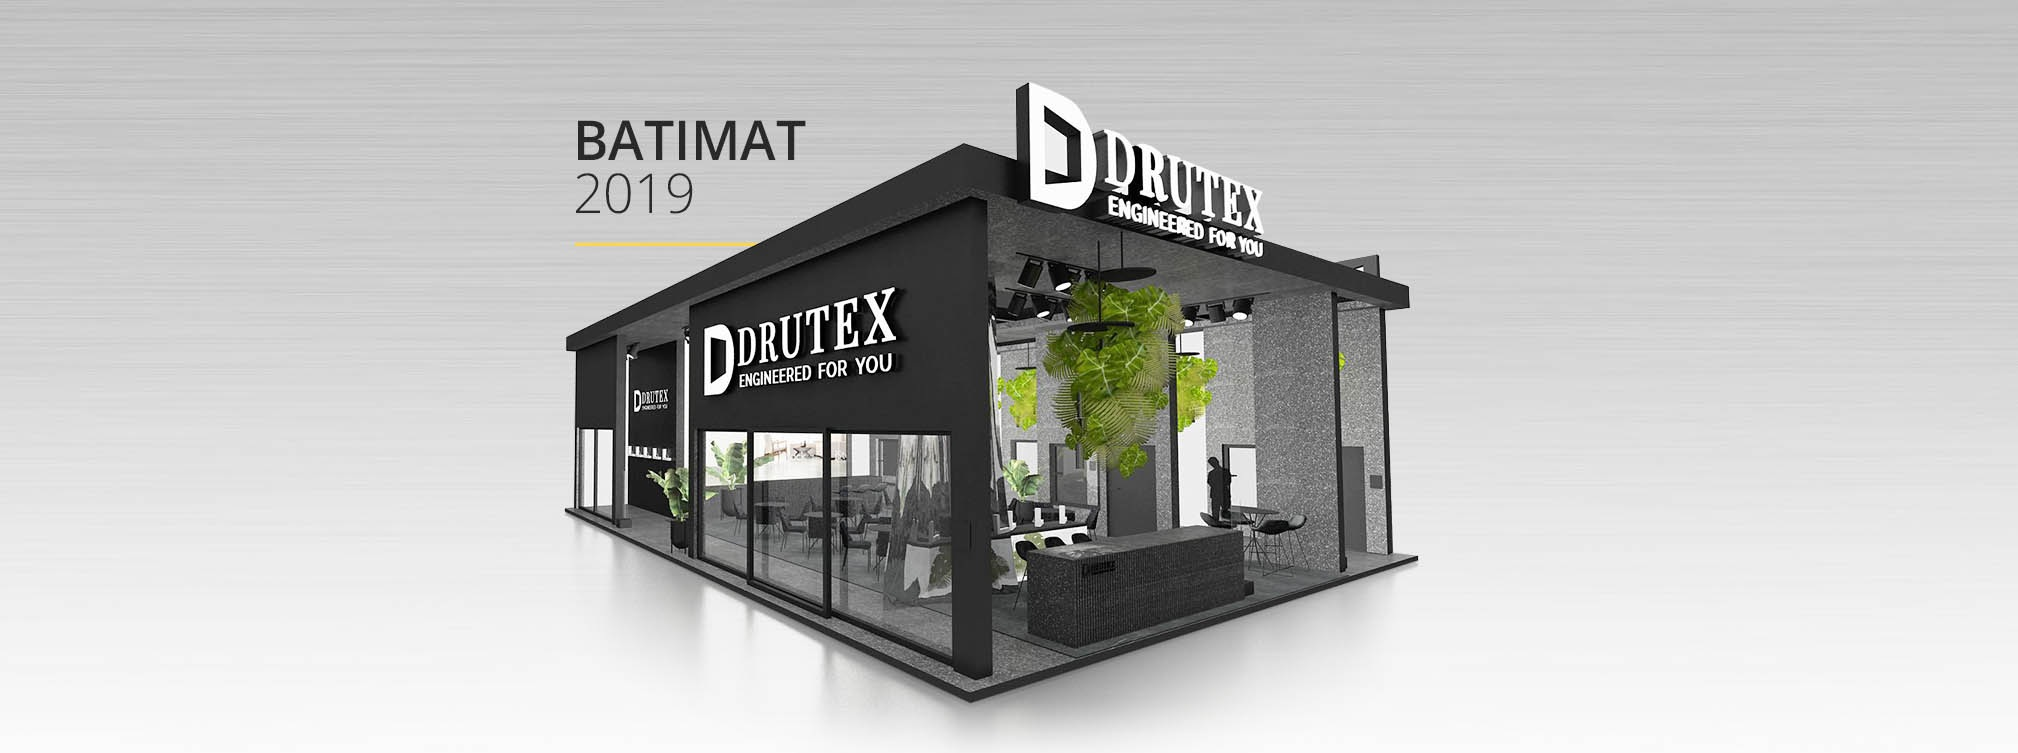 DRUTEX presents its offer at the Batimat  2019 exhibition